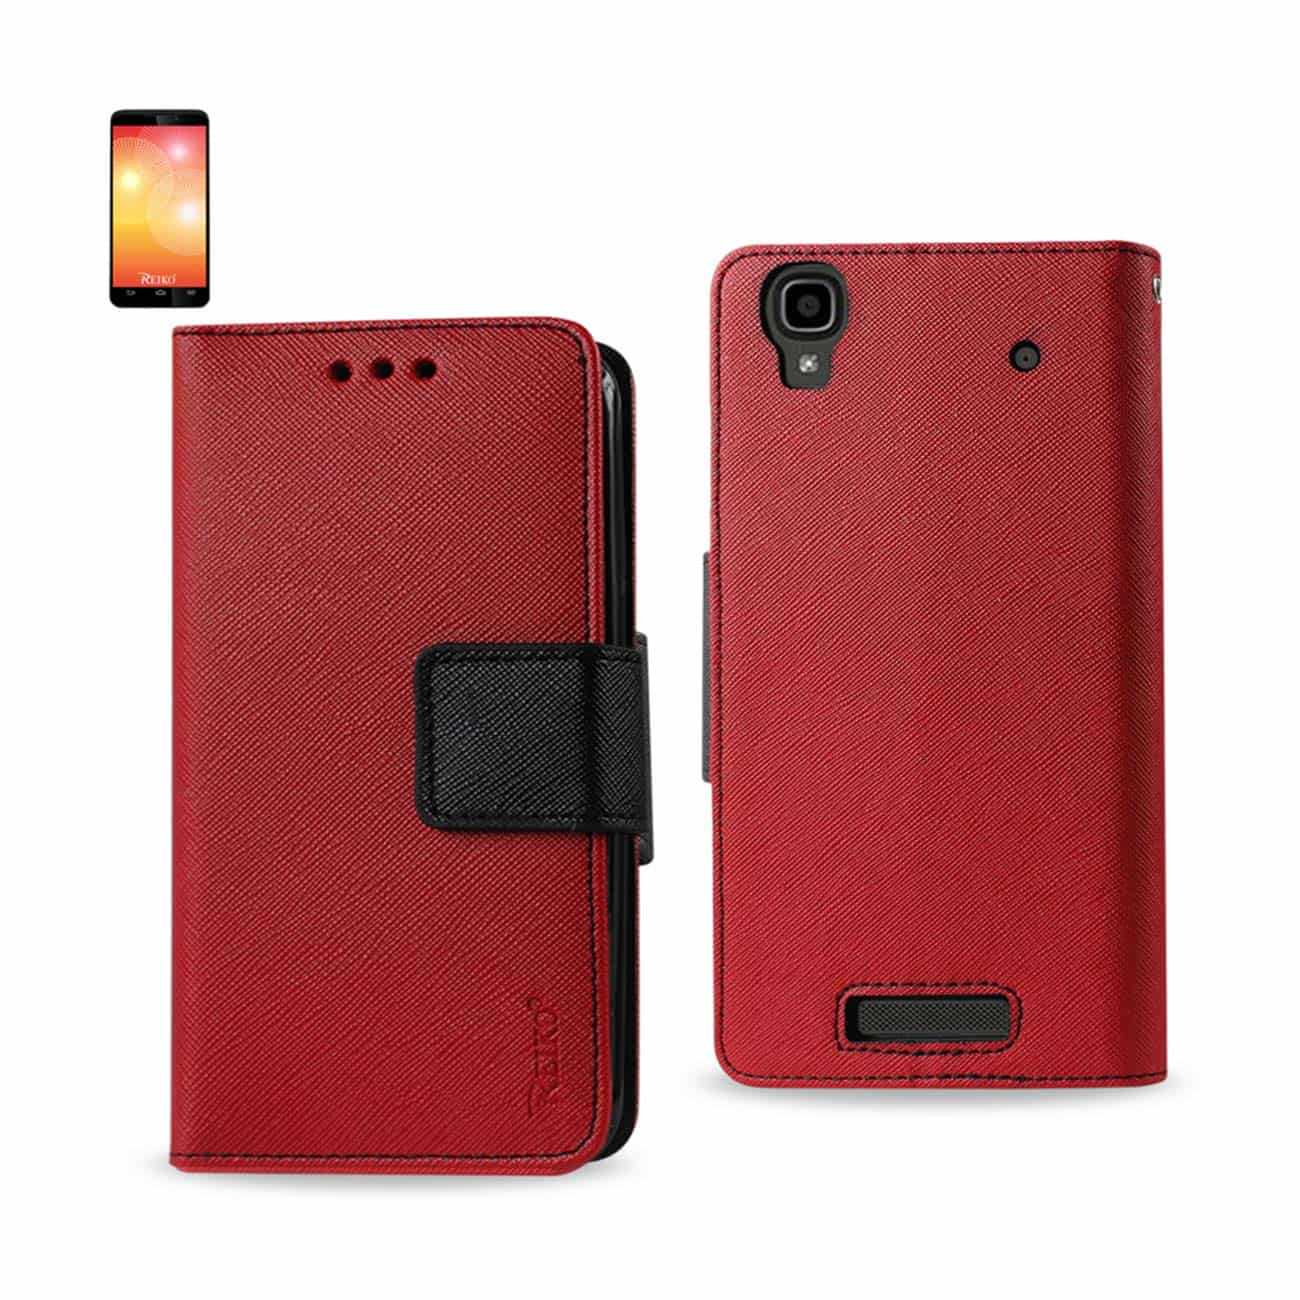 ZTE MAX 3-IN-1 WALLET CASE IN RED